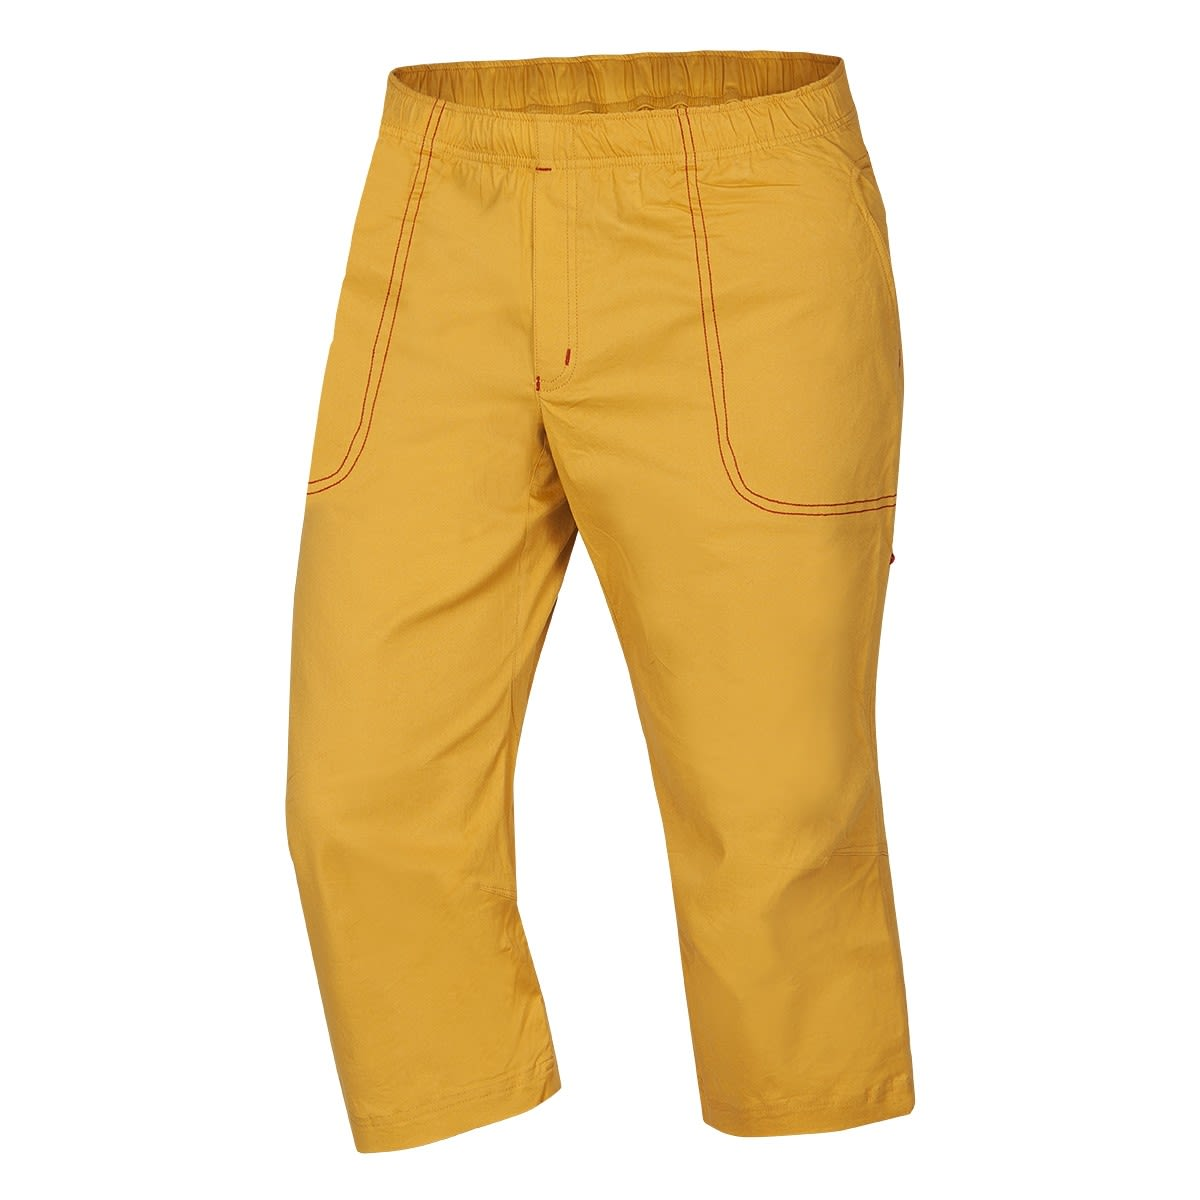 Ocun Jaws 3/4 Pant Gelb, Male S -Farbe Golden Yellow, S